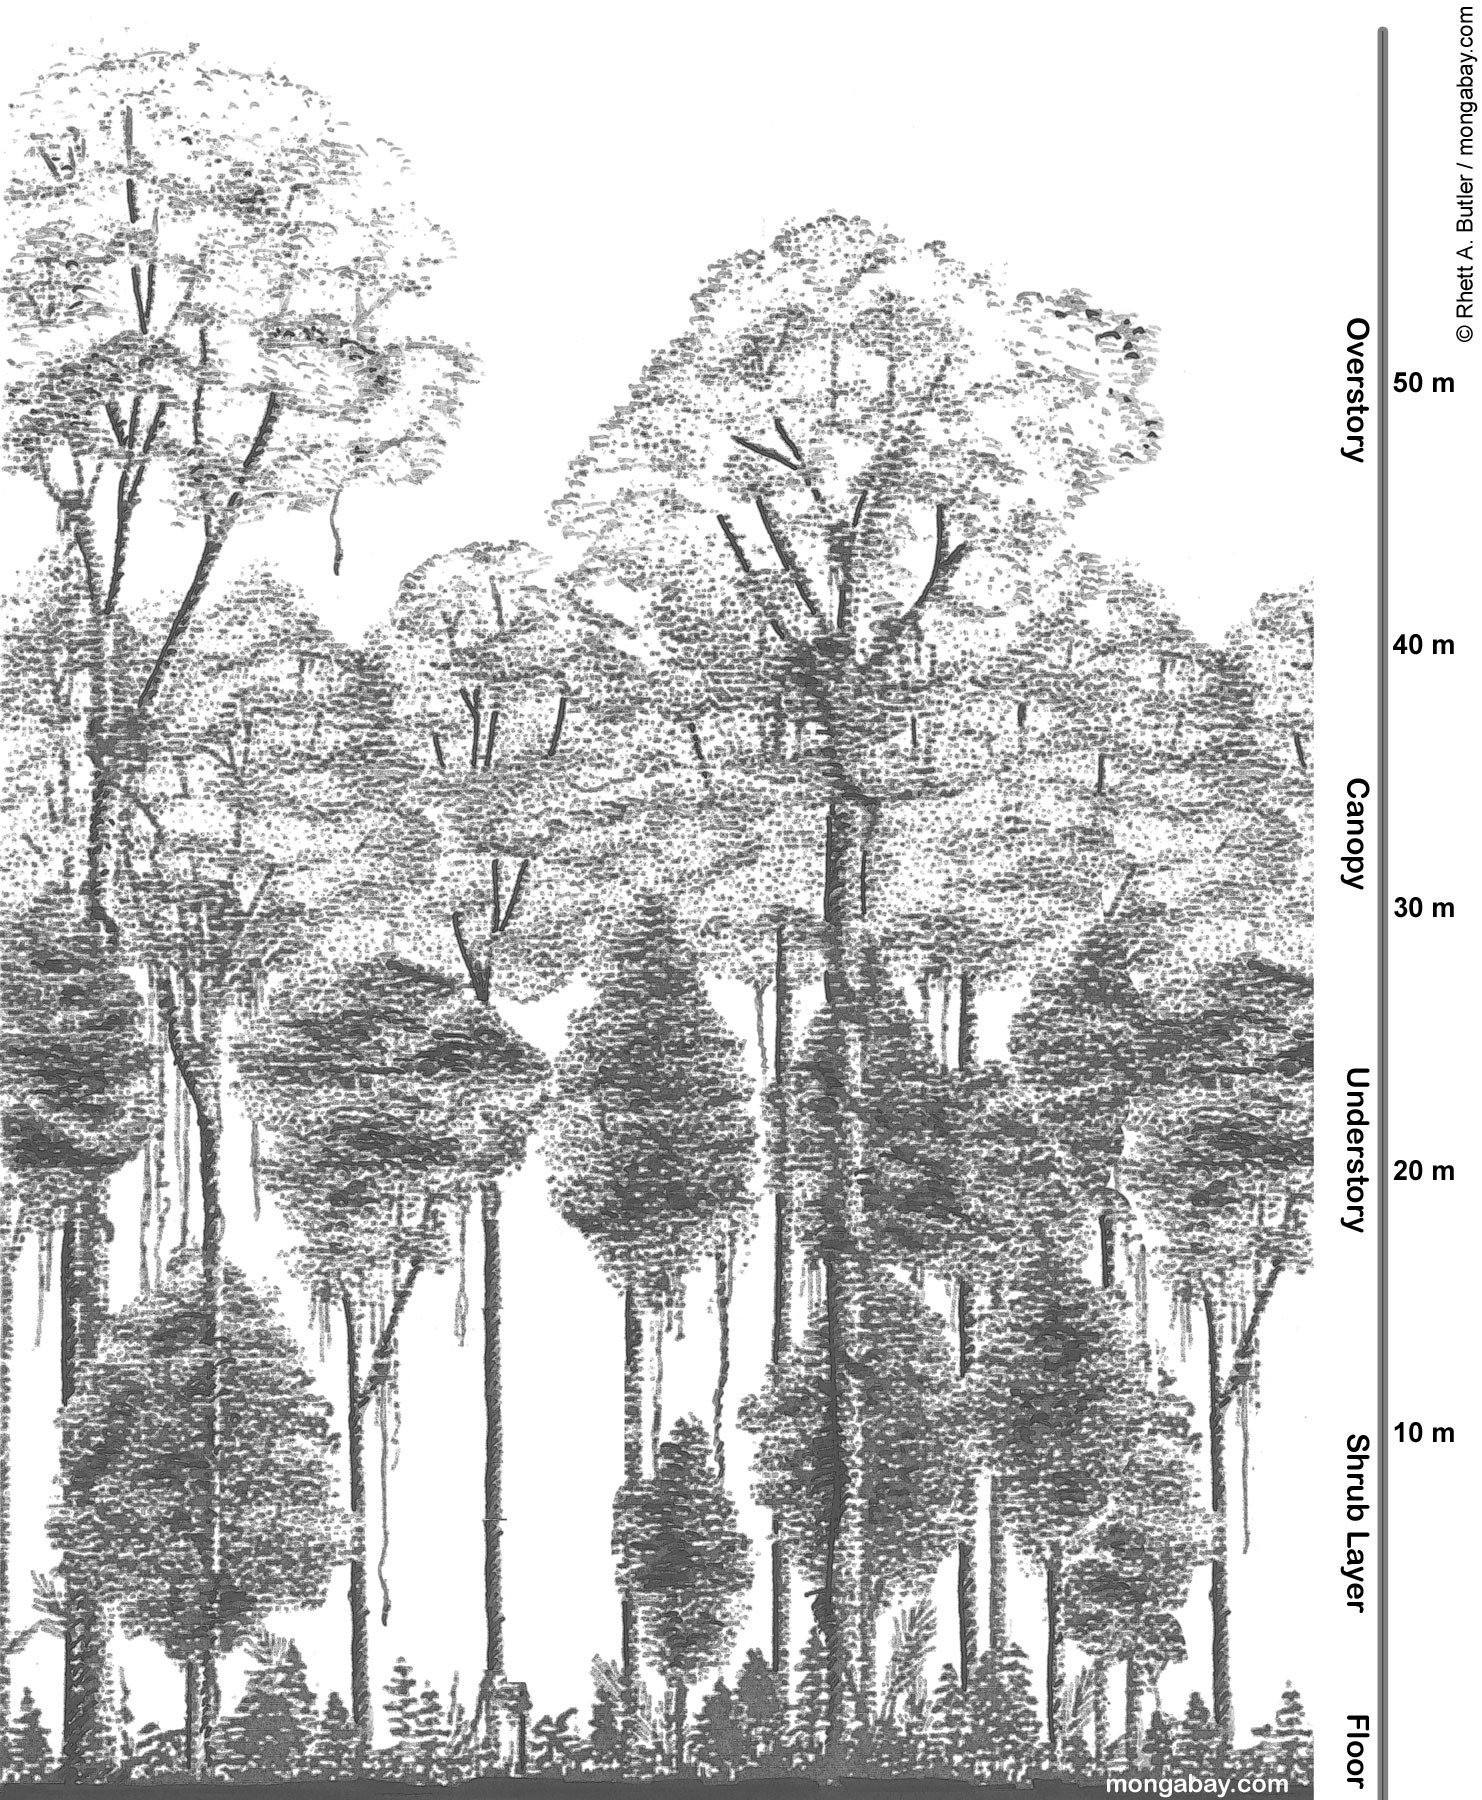 Drawn rainforest tropic Rainforest to Introduction Activities Lessons